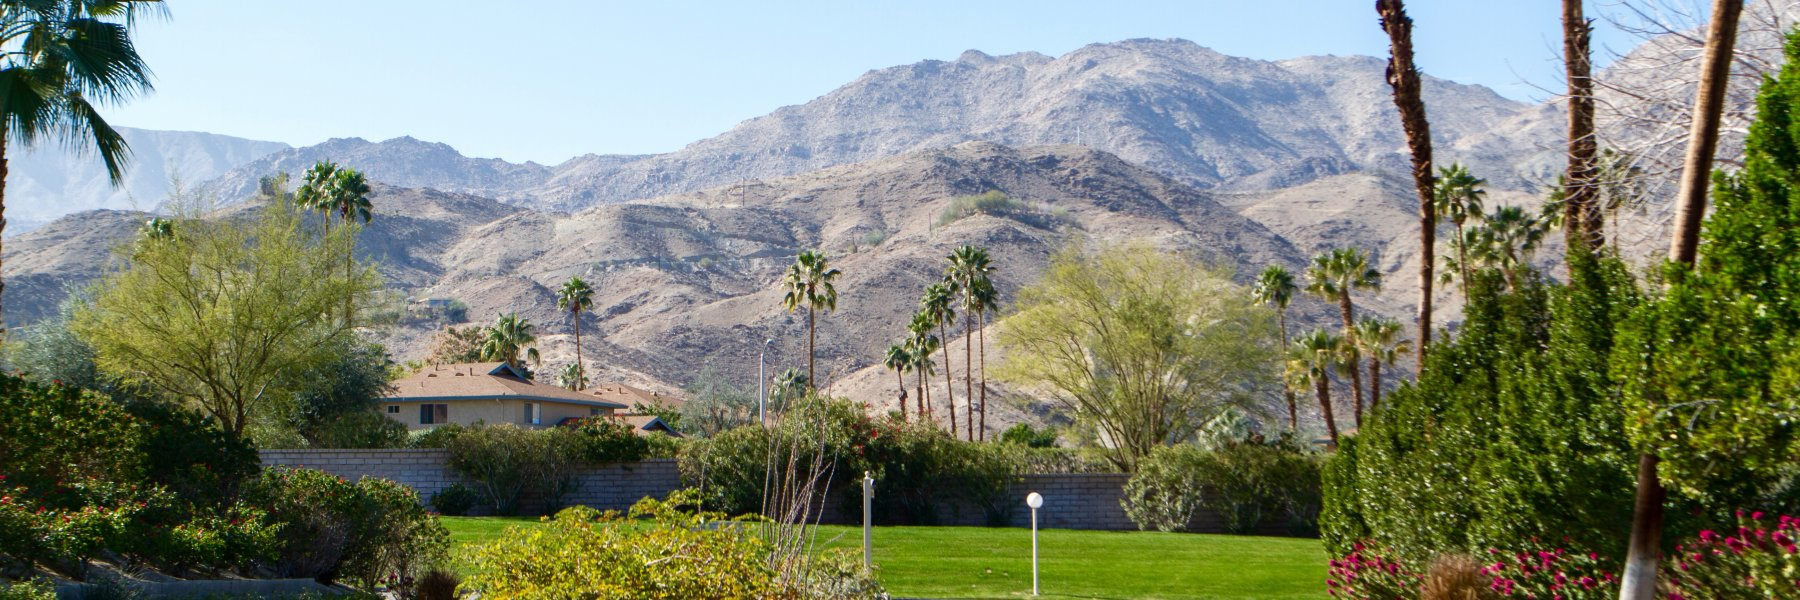 Deep Canyon Tennis Club is a community of condos in Palm Desert California